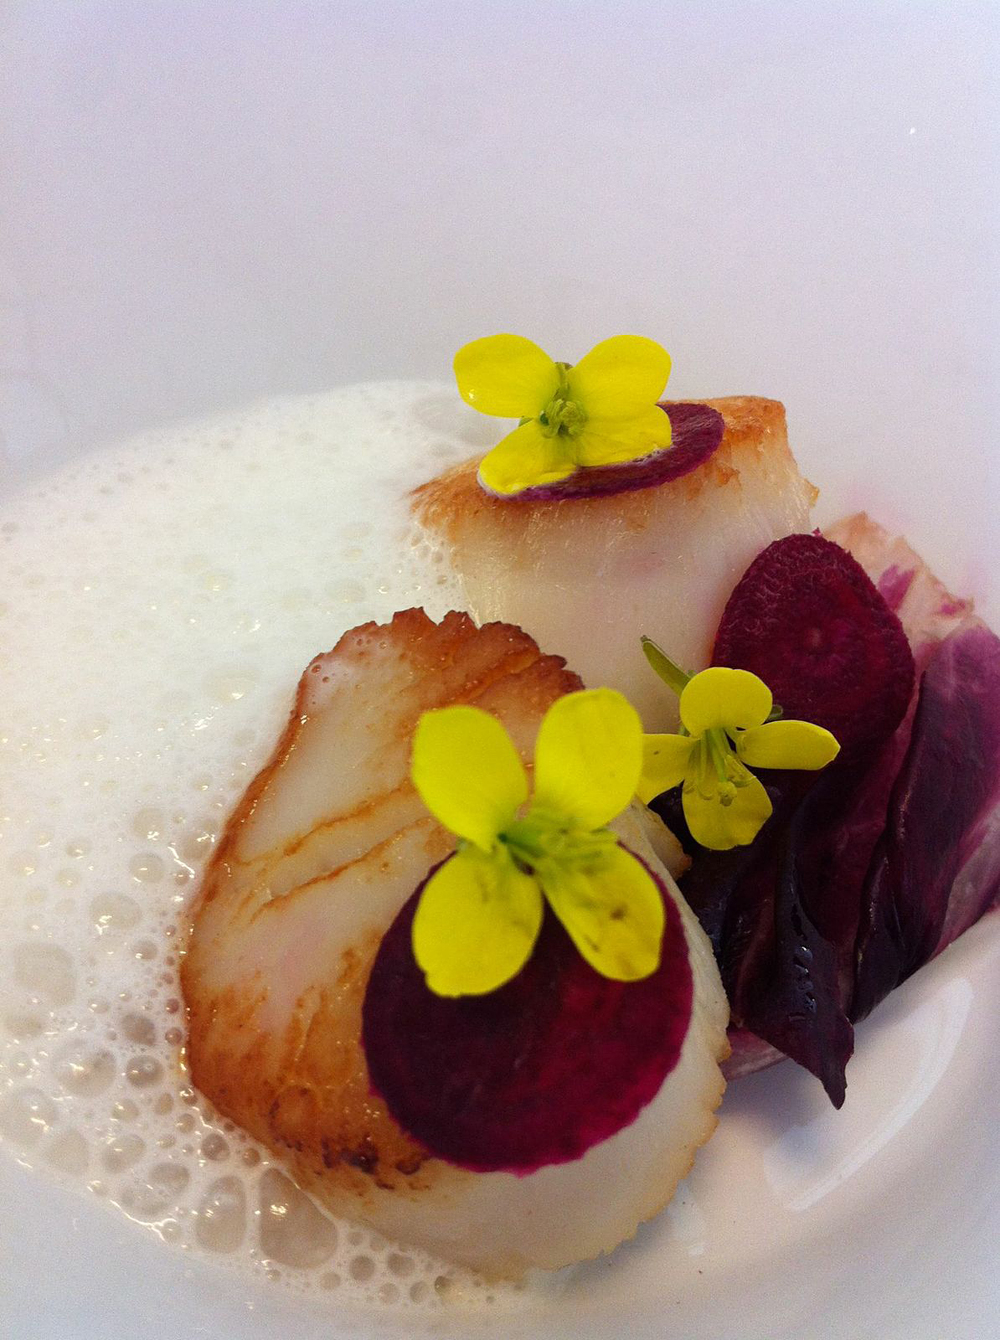 Seared Scallops with Grilled Radicchio, Shaved Beet, Truffle Parm Foam. Photo courtesy Nosh SF